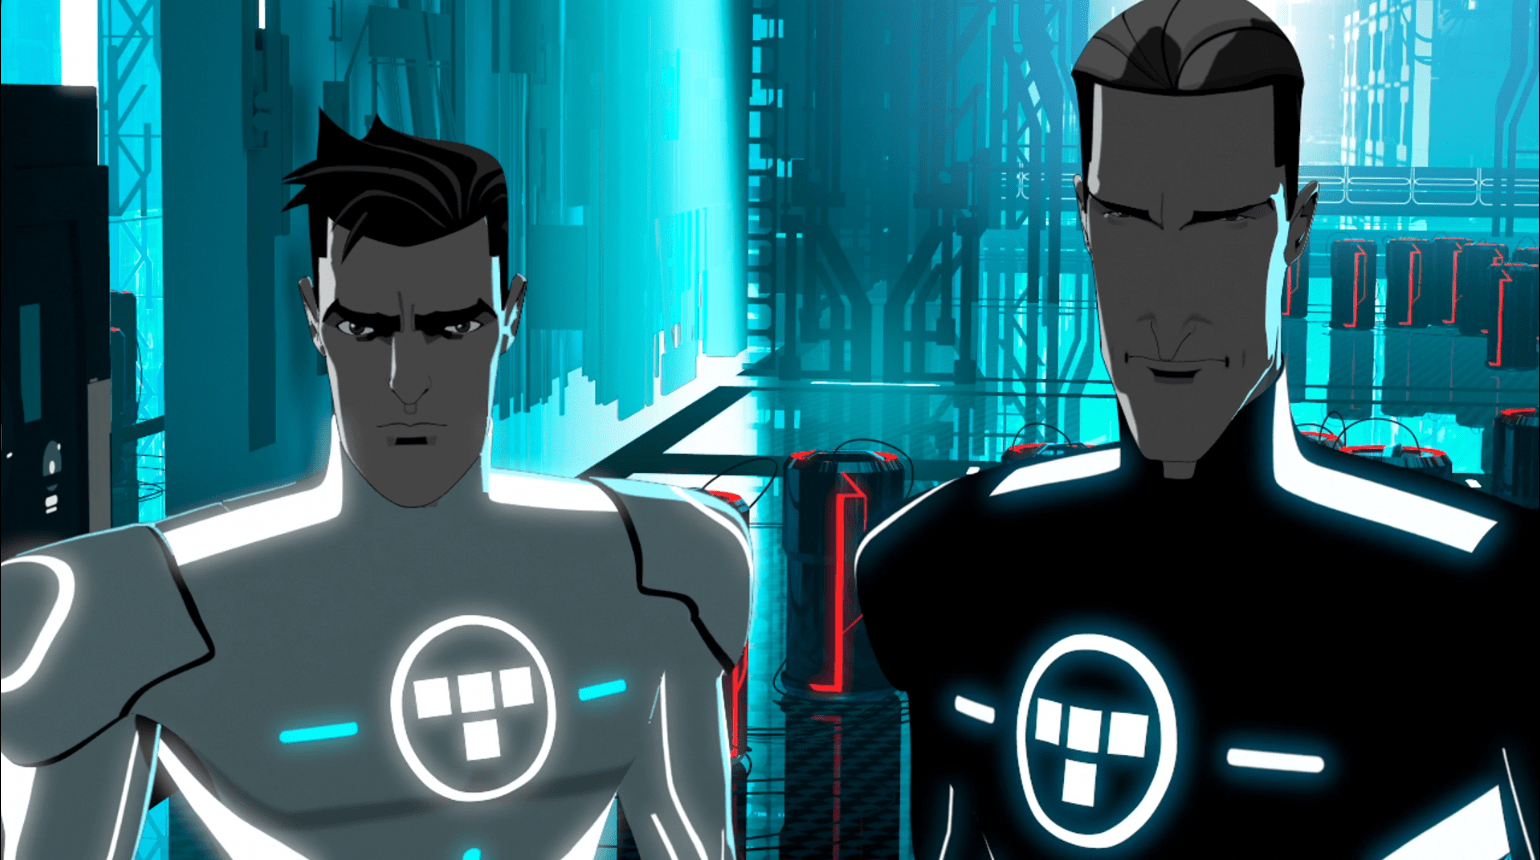 Lg Animated Wallpaper Tron Uprising Wallpaper And Background Image 1540x860